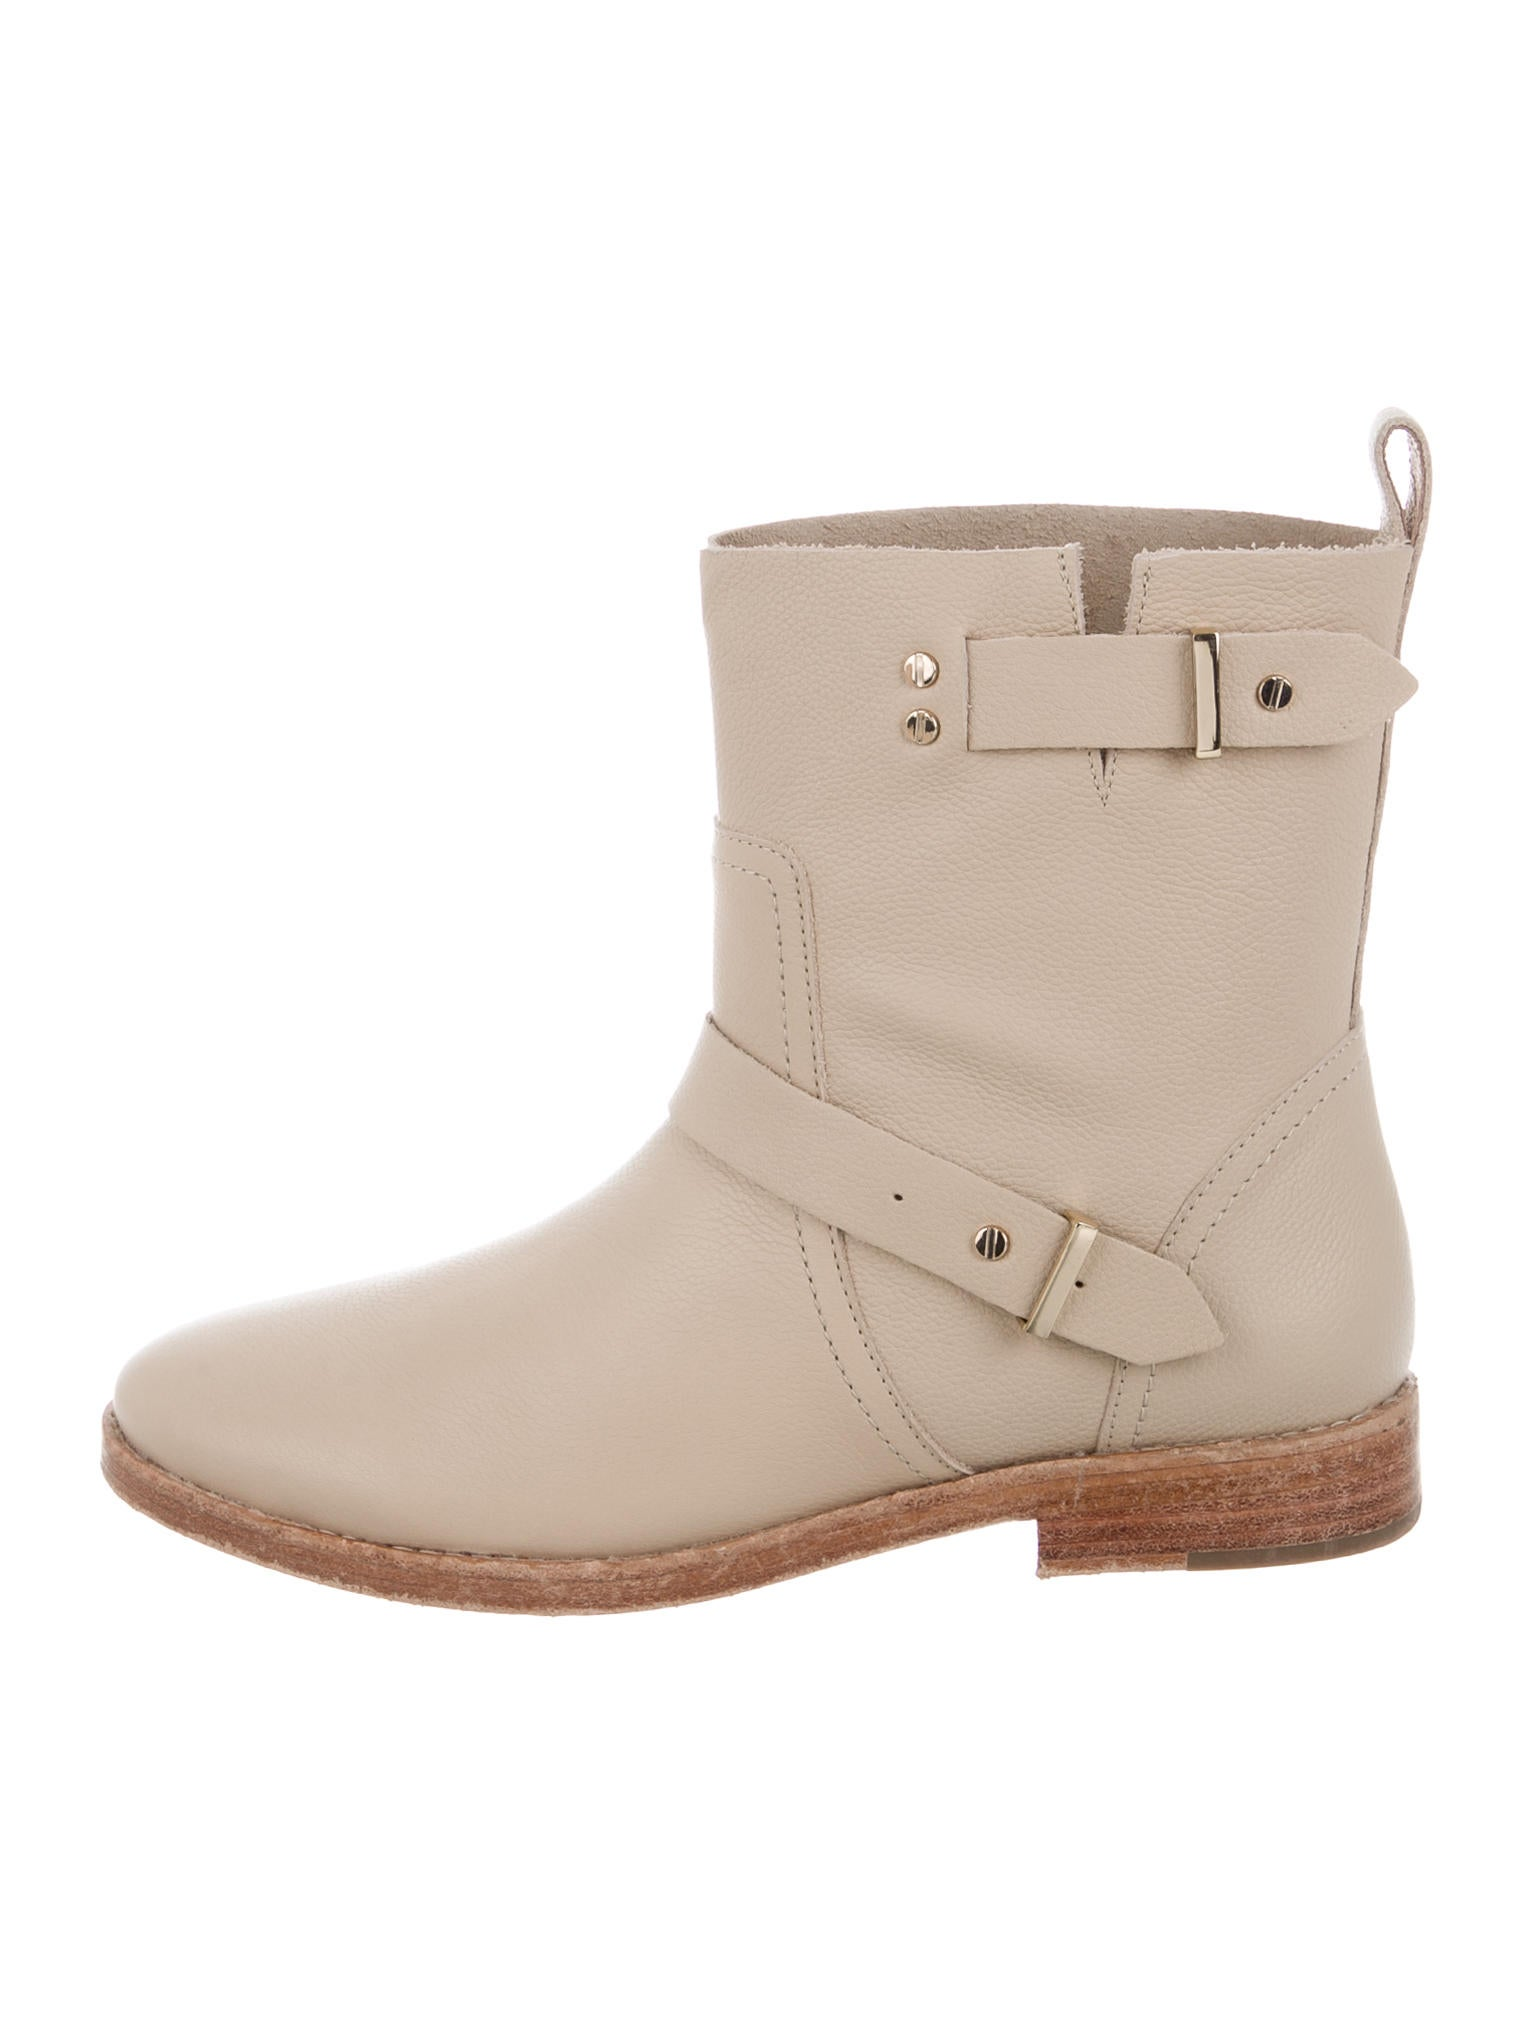 Joie Suede Ankle Boots w/ Tags for sale footlocker outlet excellent buy cheap shop offer outlet discounts sale professional kcChv